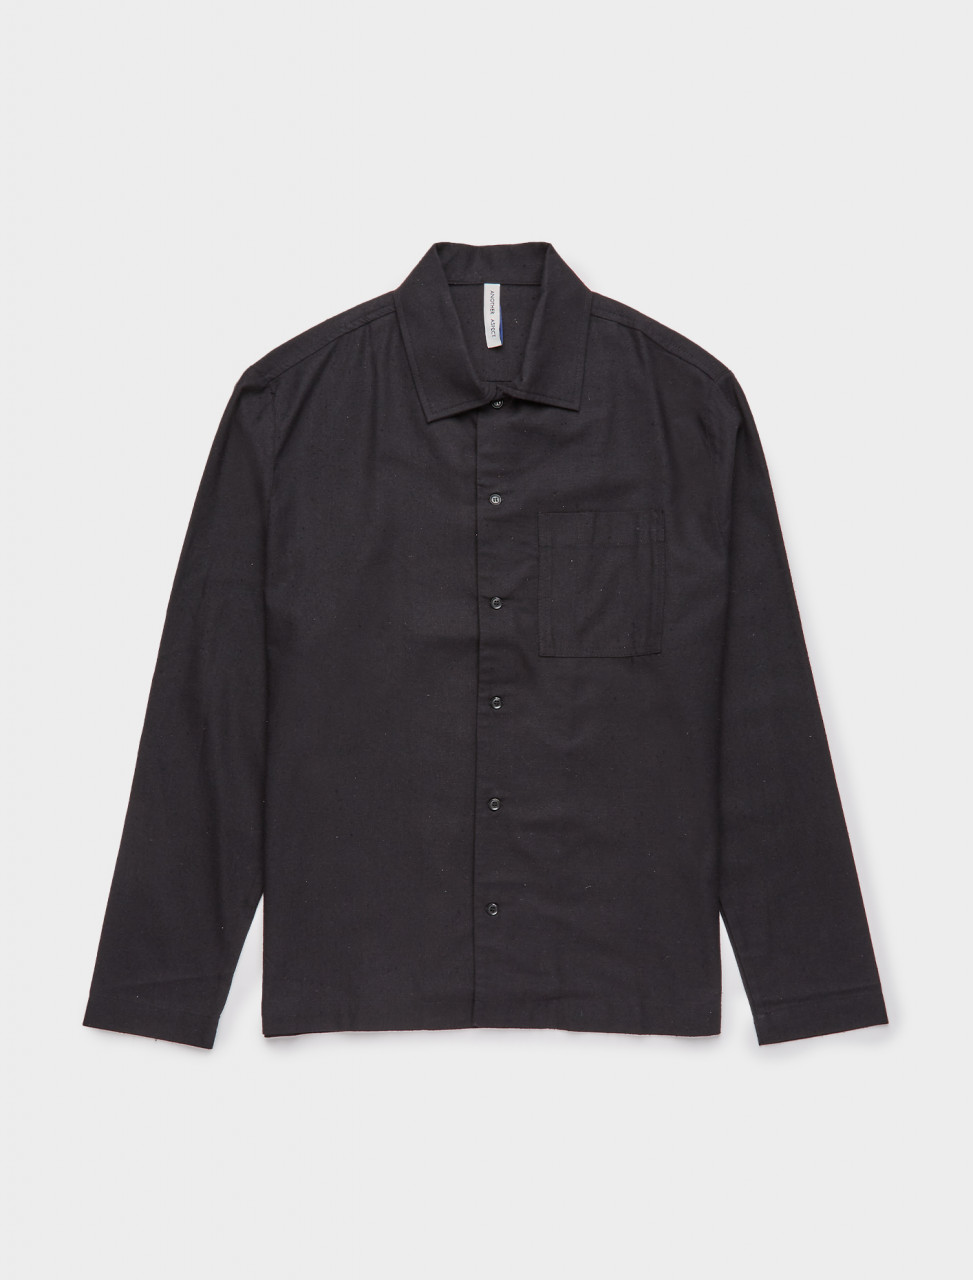 344-123460-005 ANOTHER ASPECT ANOTHER SHIRT 2.1 BLACK